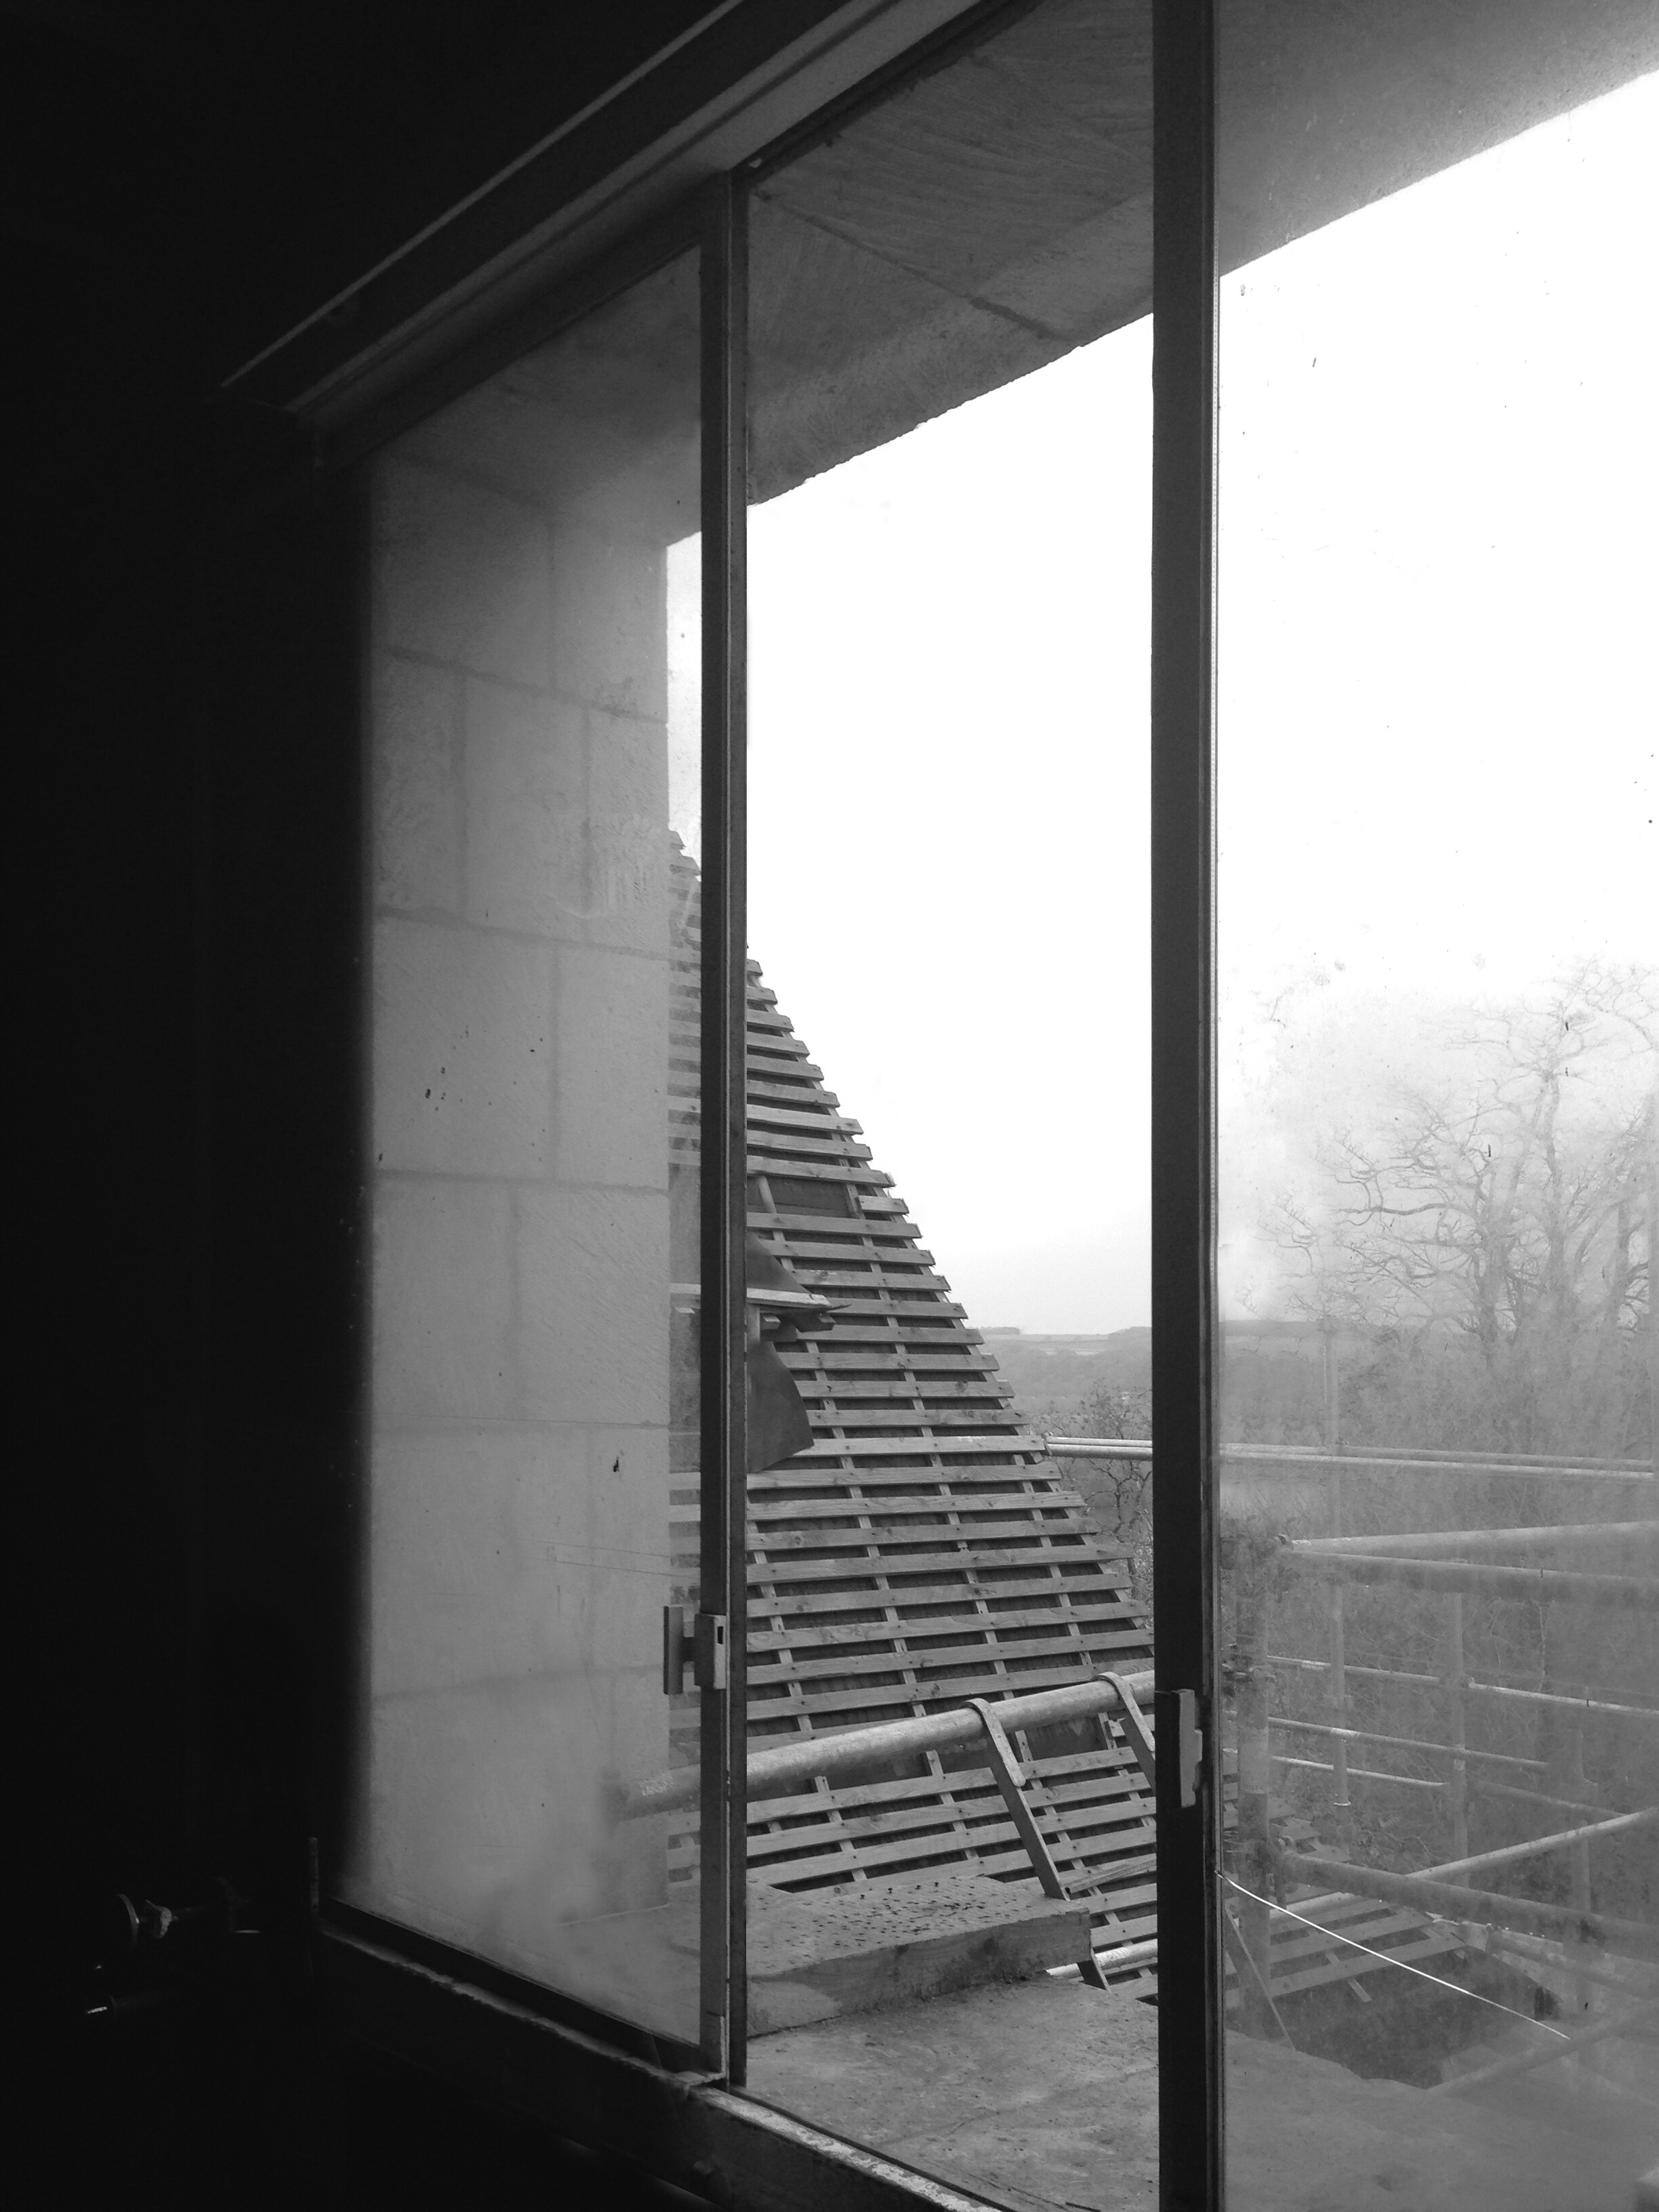 Brief technical and architectural history of the minimalist window ...